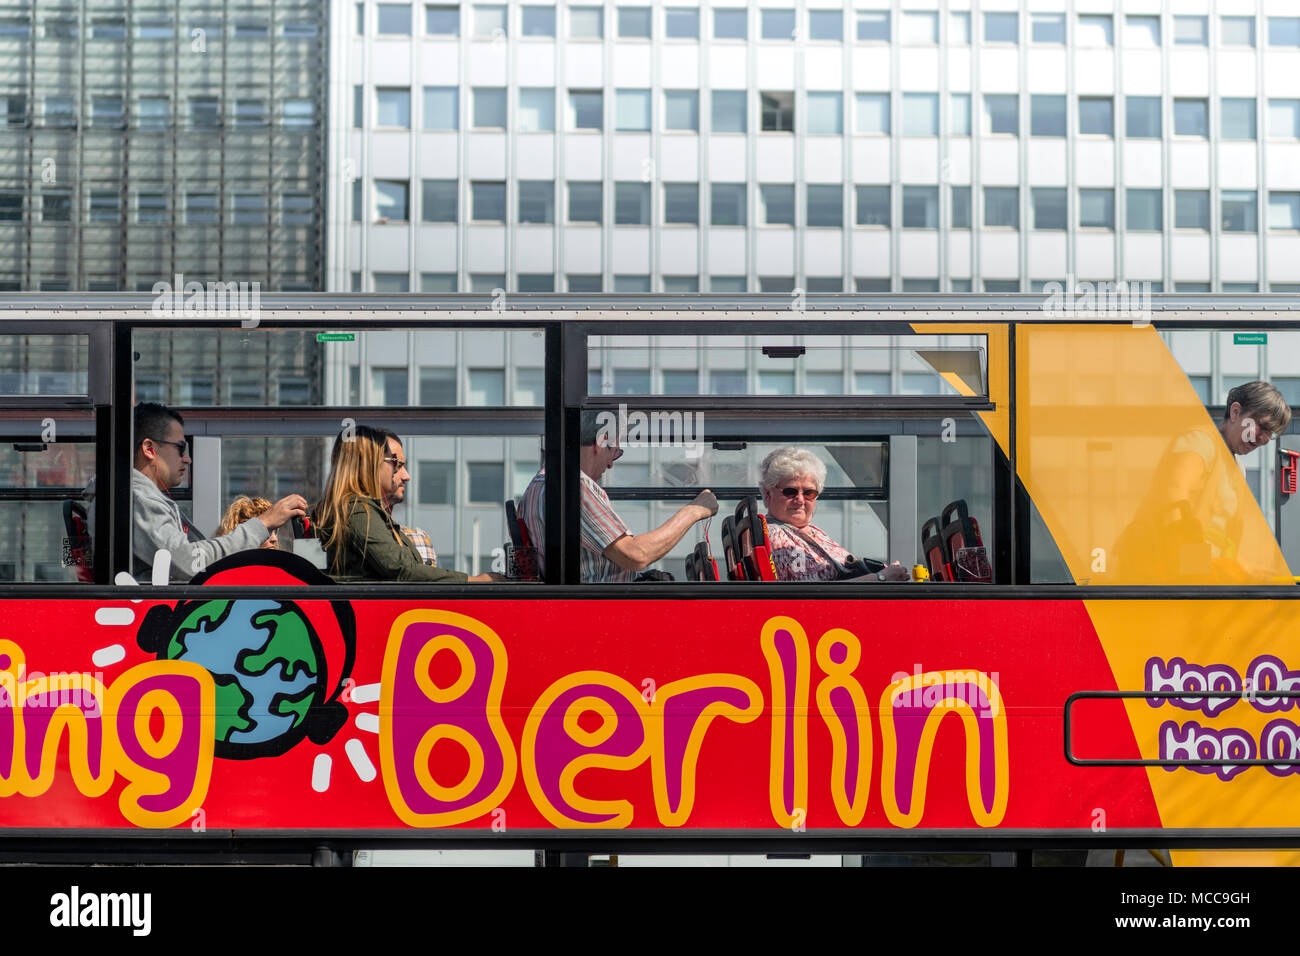 People sit on the top deck of one of the many 'Hop On, Hop Off' buses that are a major tourist attraction in the German capital of Berlin. - Stock Image